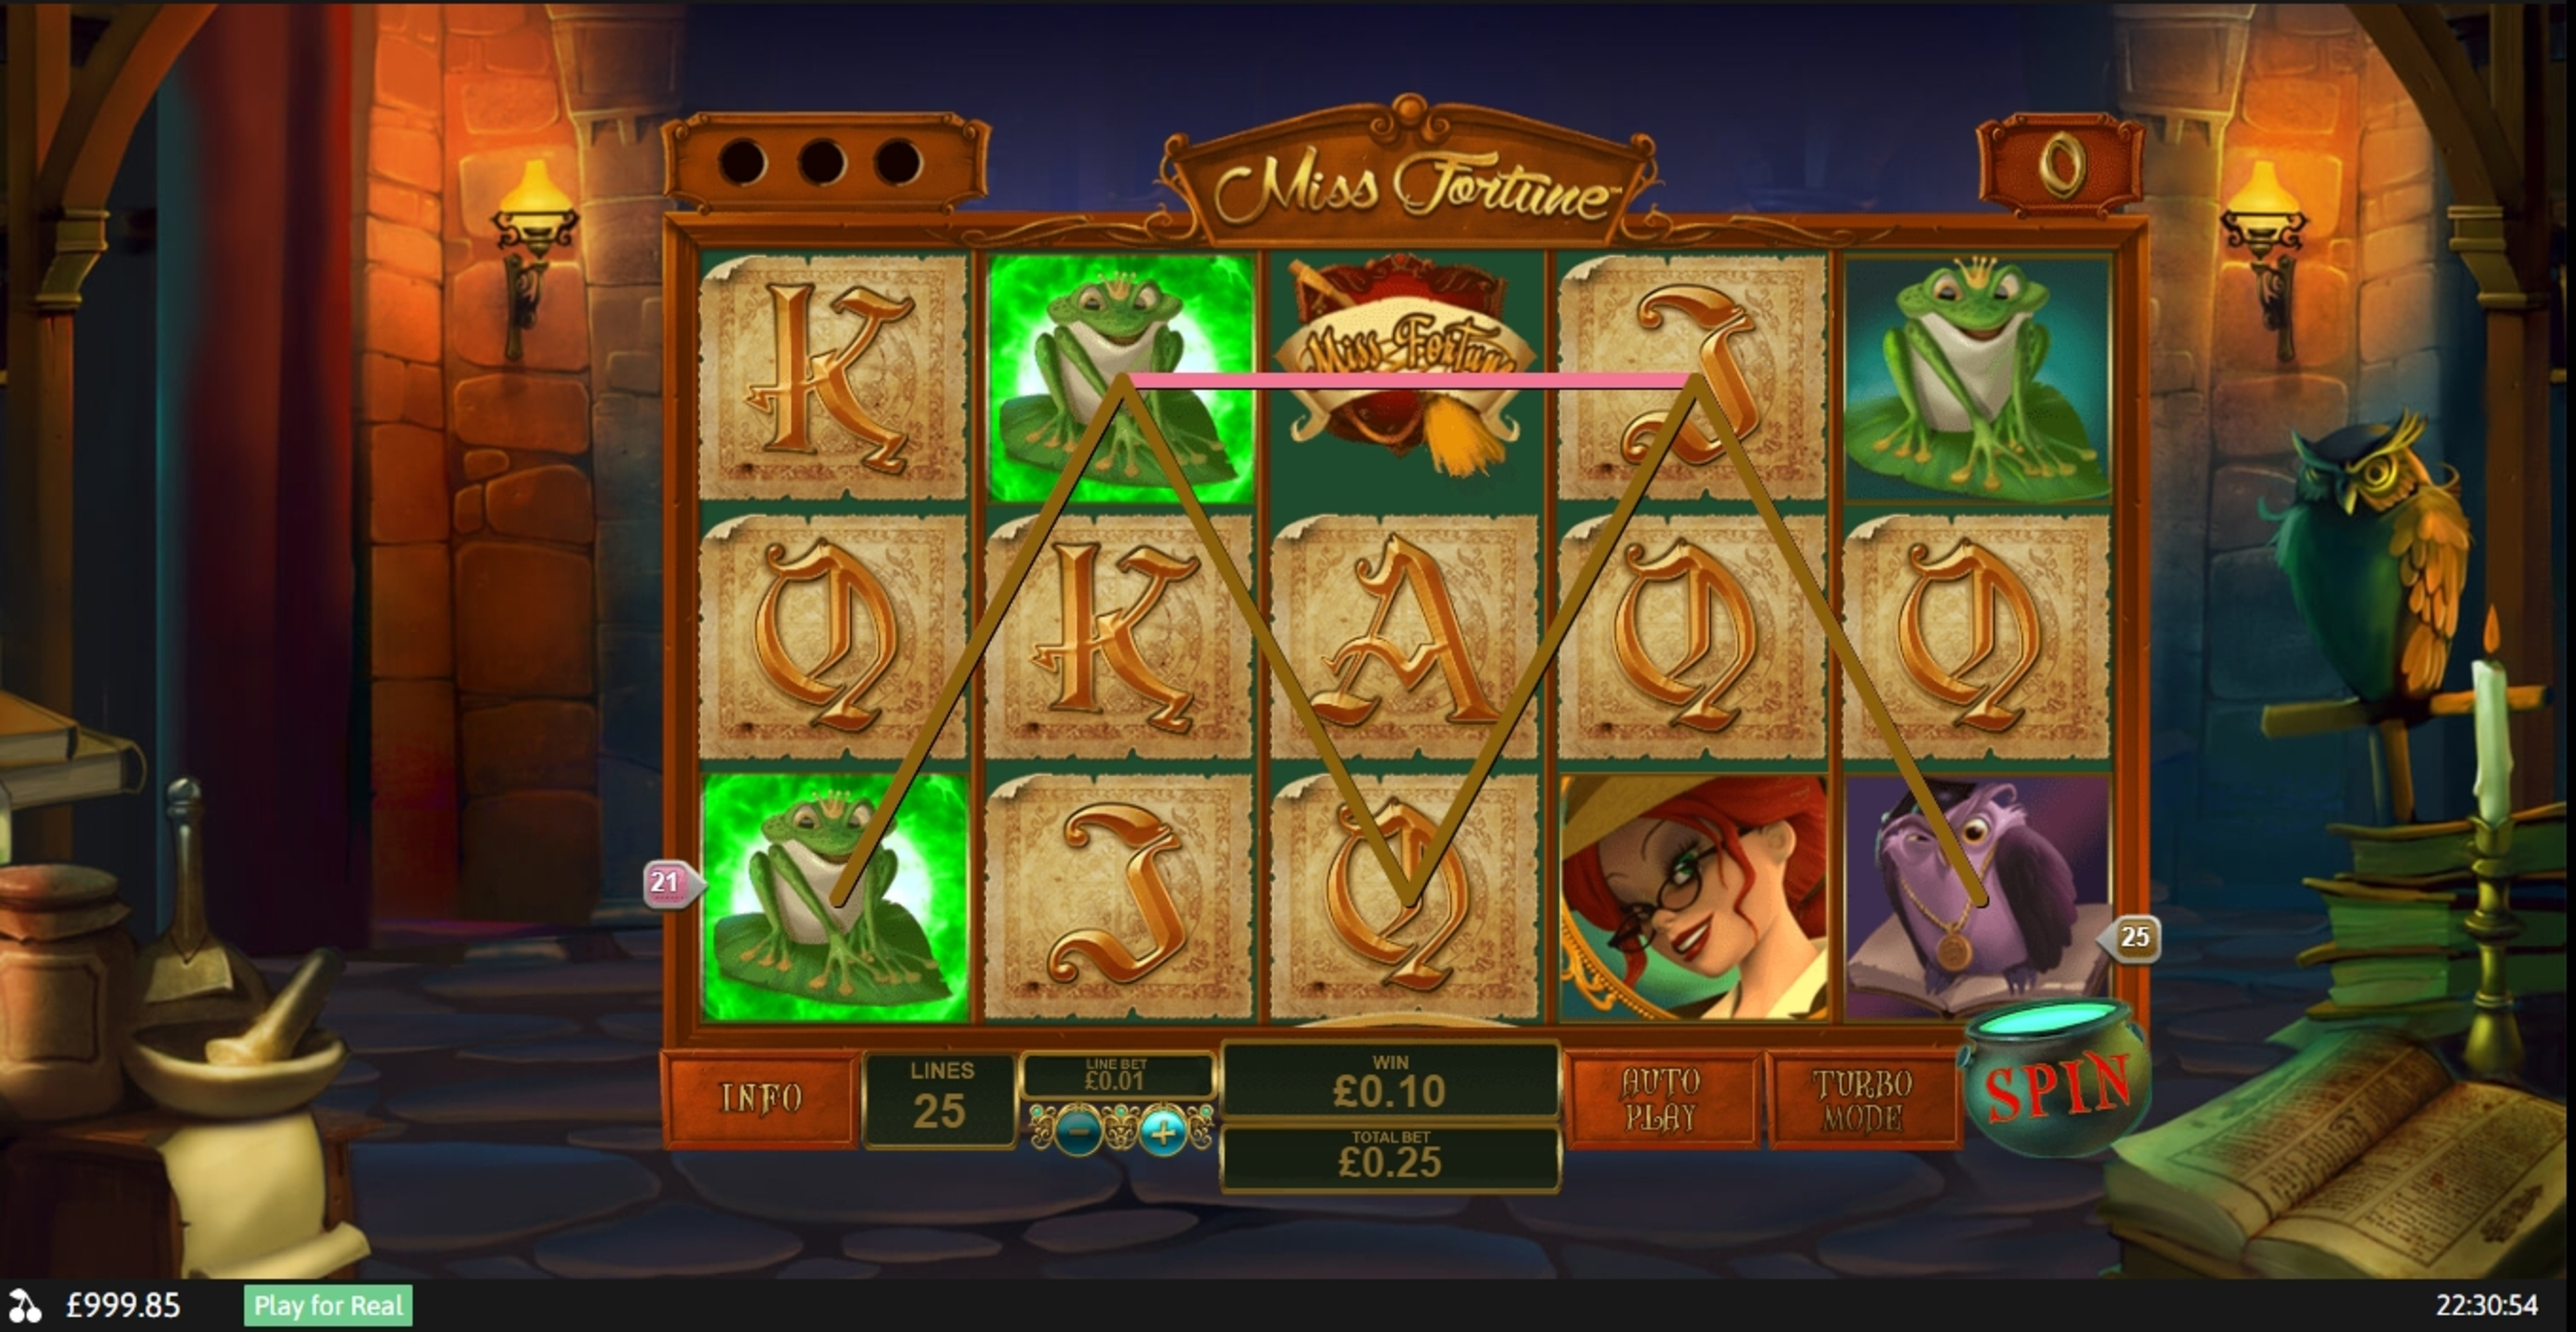 Win Money in Miss Fortune Free Slot Game by Playtech